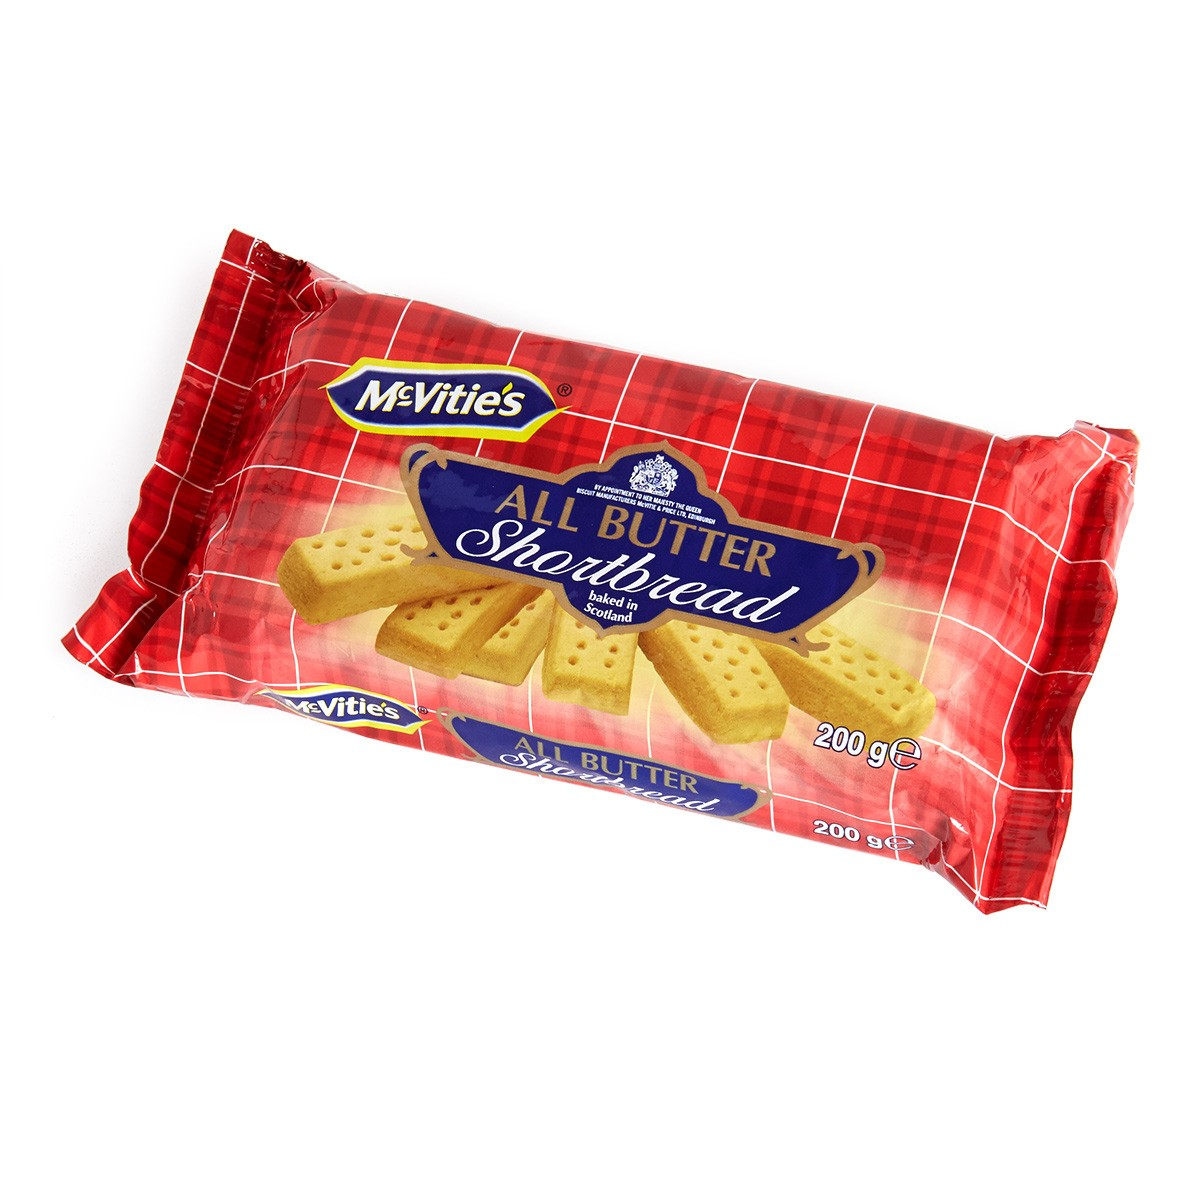 McVities All Butter Shortbread Cookies, 7 Oz